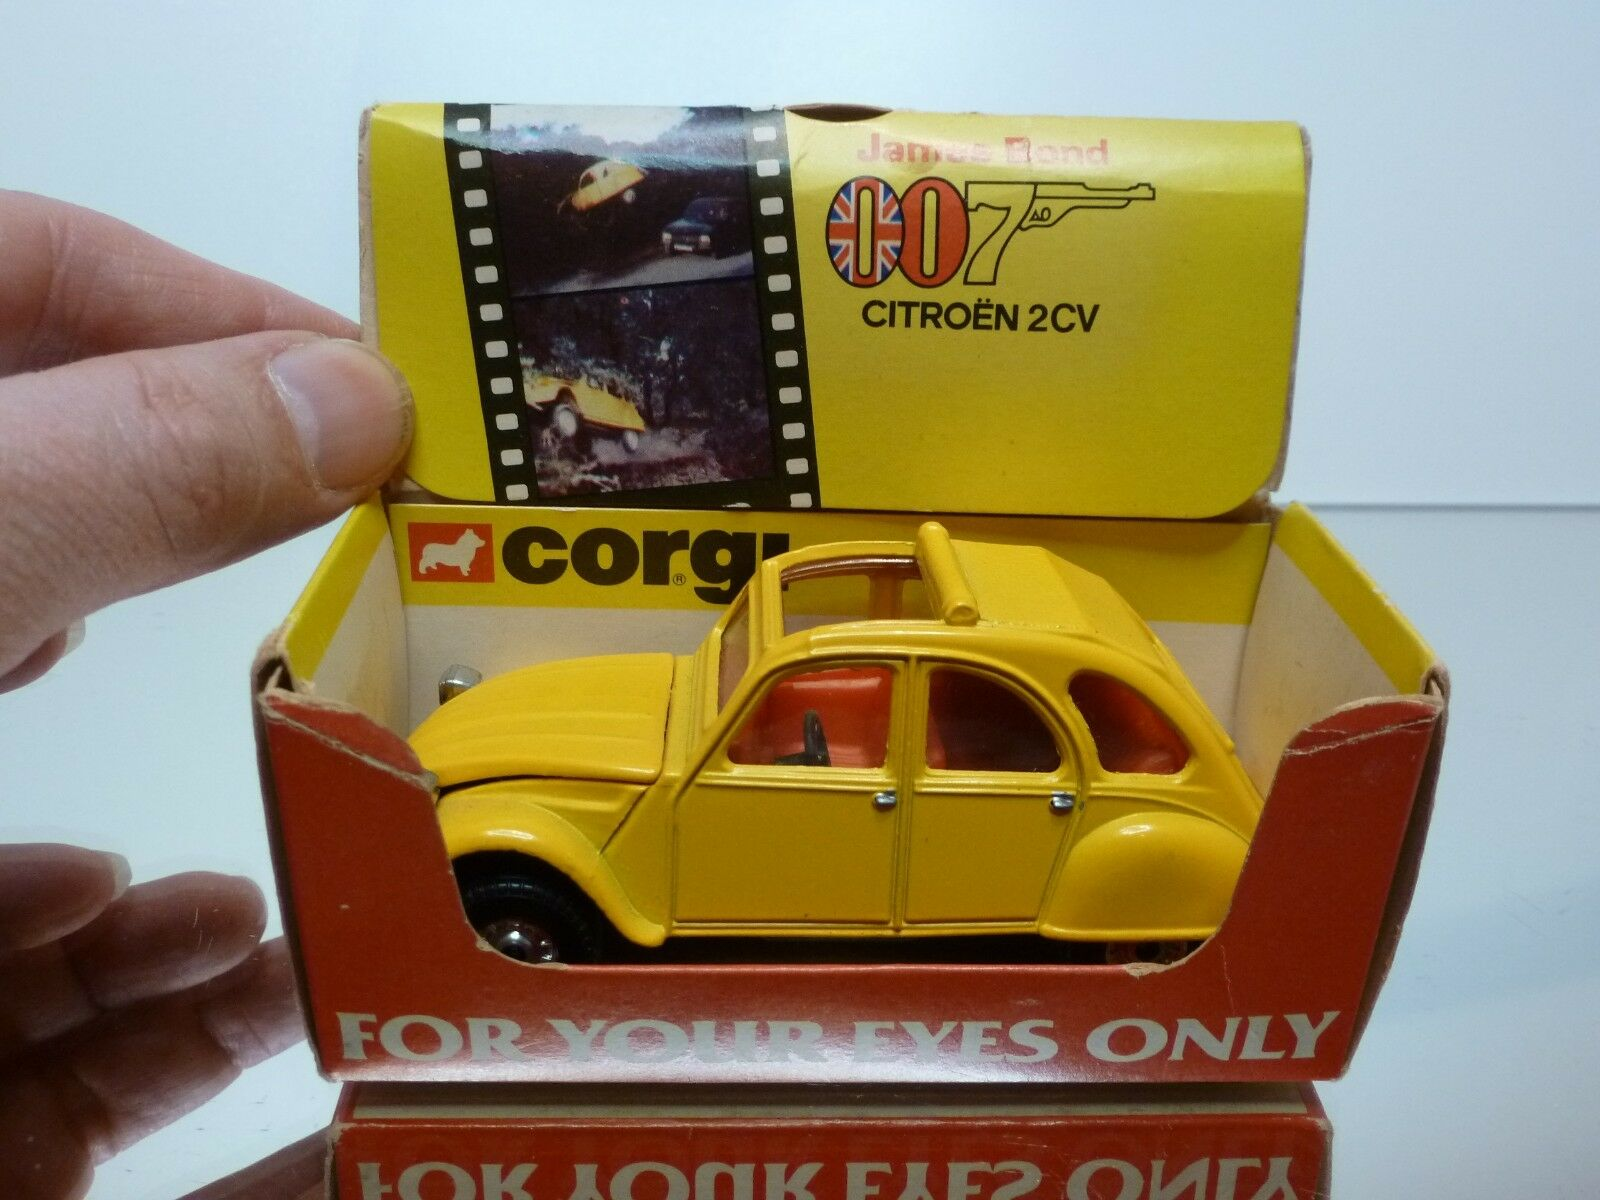 CORGI TOYS CITROEN 2CV JAMES BOND 007 FOR YOUR EYES ONLY - giallo - GOOD IN BOX